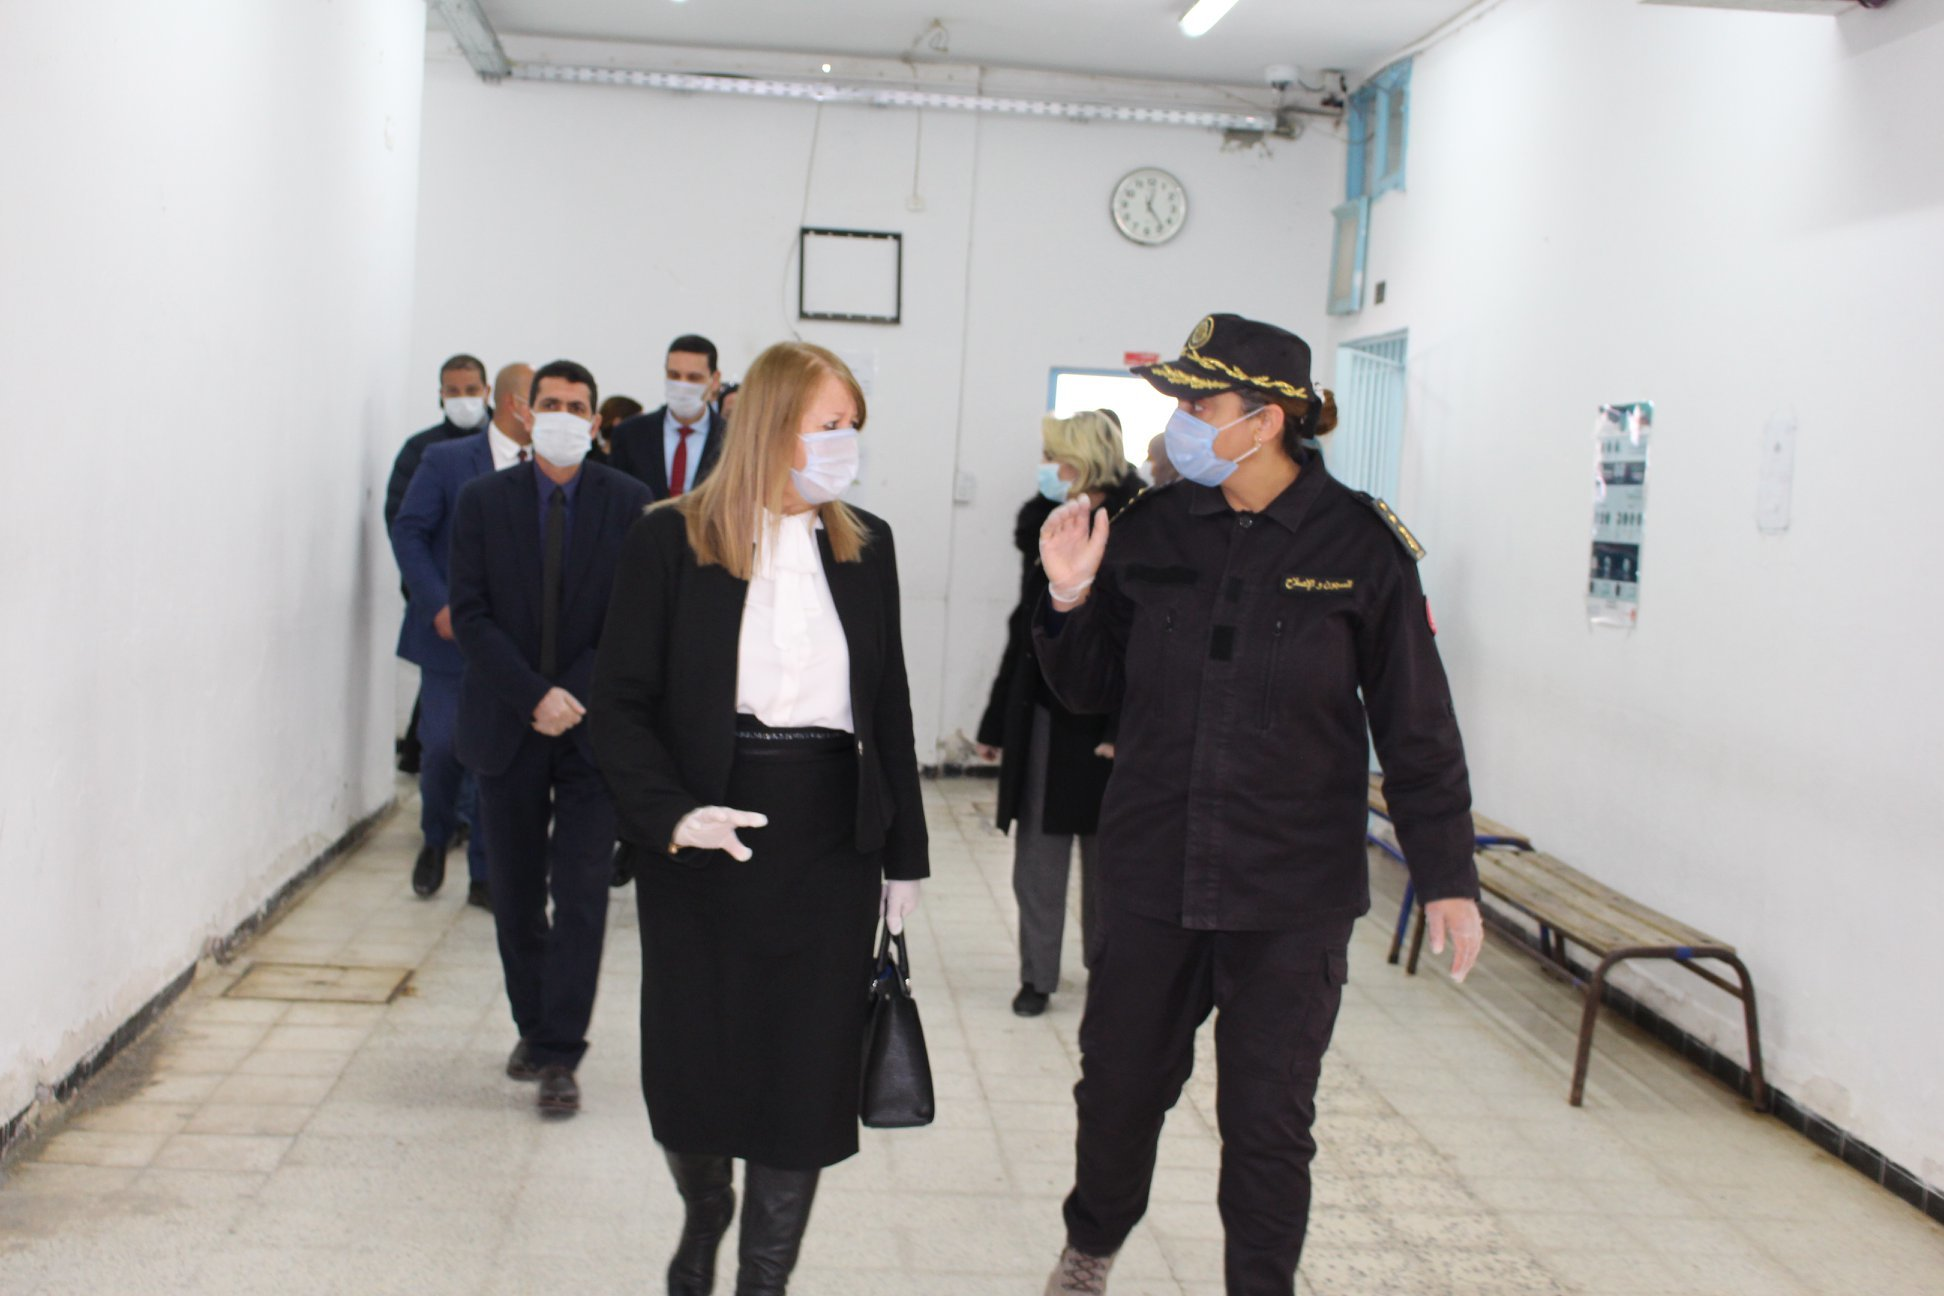 Tunisia's Minister of Justice visits Manouba women's prison to ensure that preventive measures are being put in place, Kapitalis, 12 March 2020 (http://kapitalis.com/tunisie/2020/03/13/coronavirus-sterilisation-et-autres-mesures-preventives-dans-les-prisons-tunisiennes/)